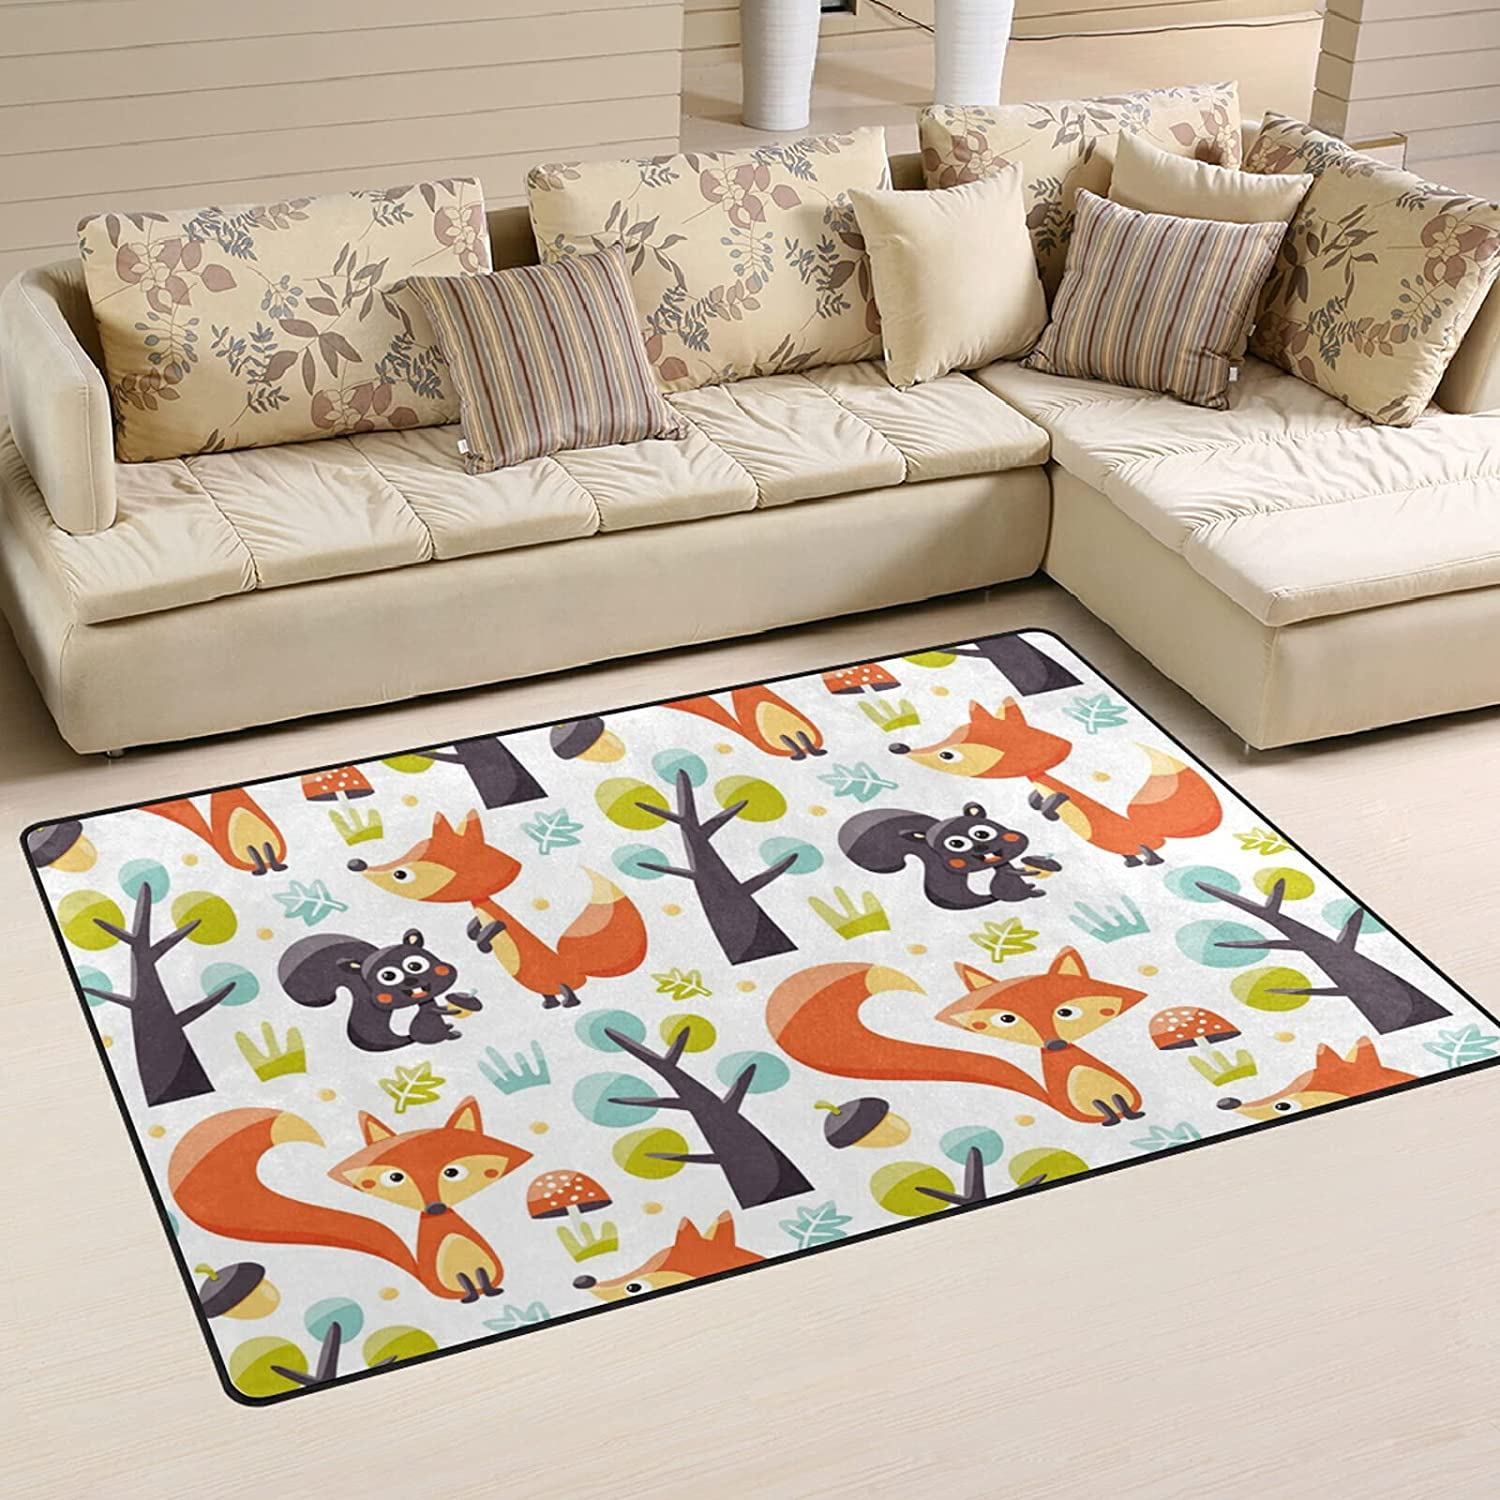 Fresno Mall Foxes Squirrels Trees Large Soft Area Nursery Playmat Rugs M Rug Product